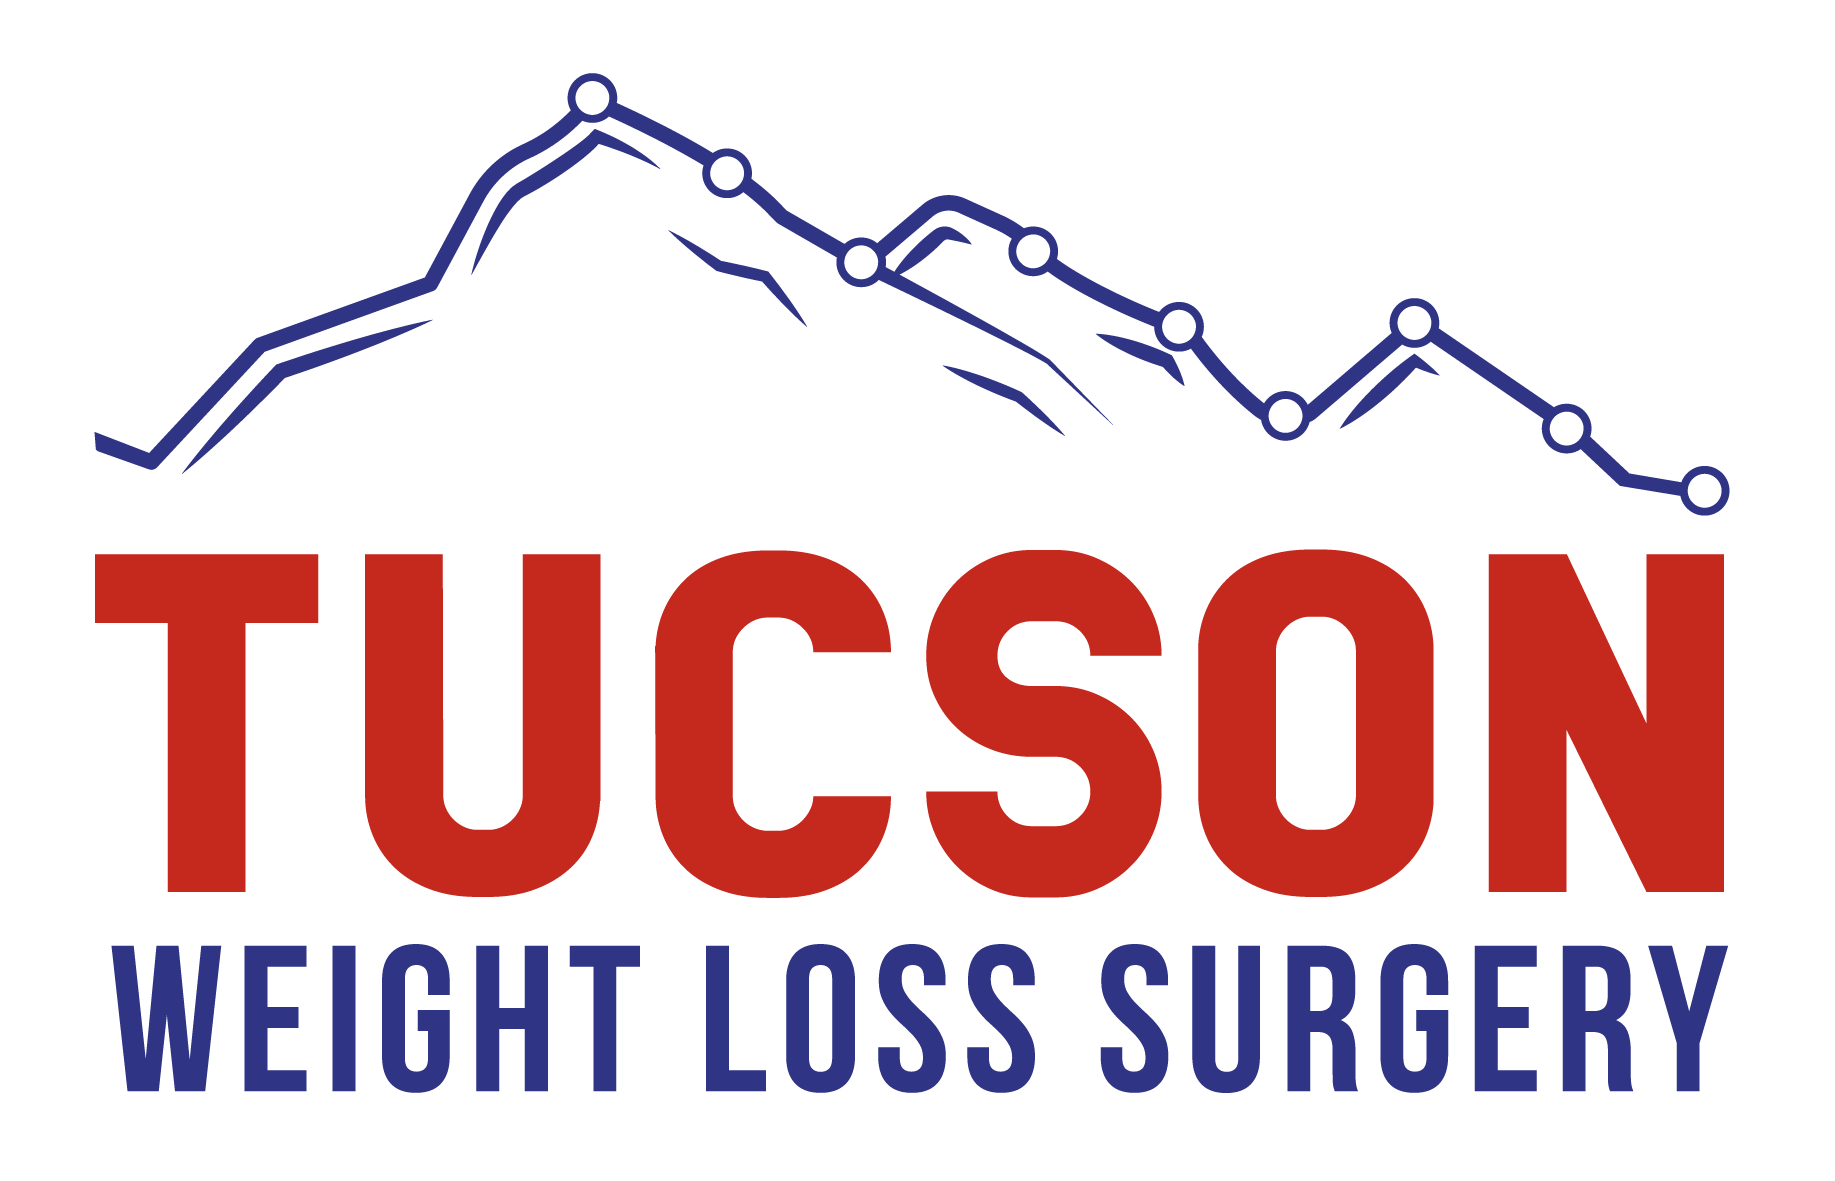 Tucson Weight Loss Surgery